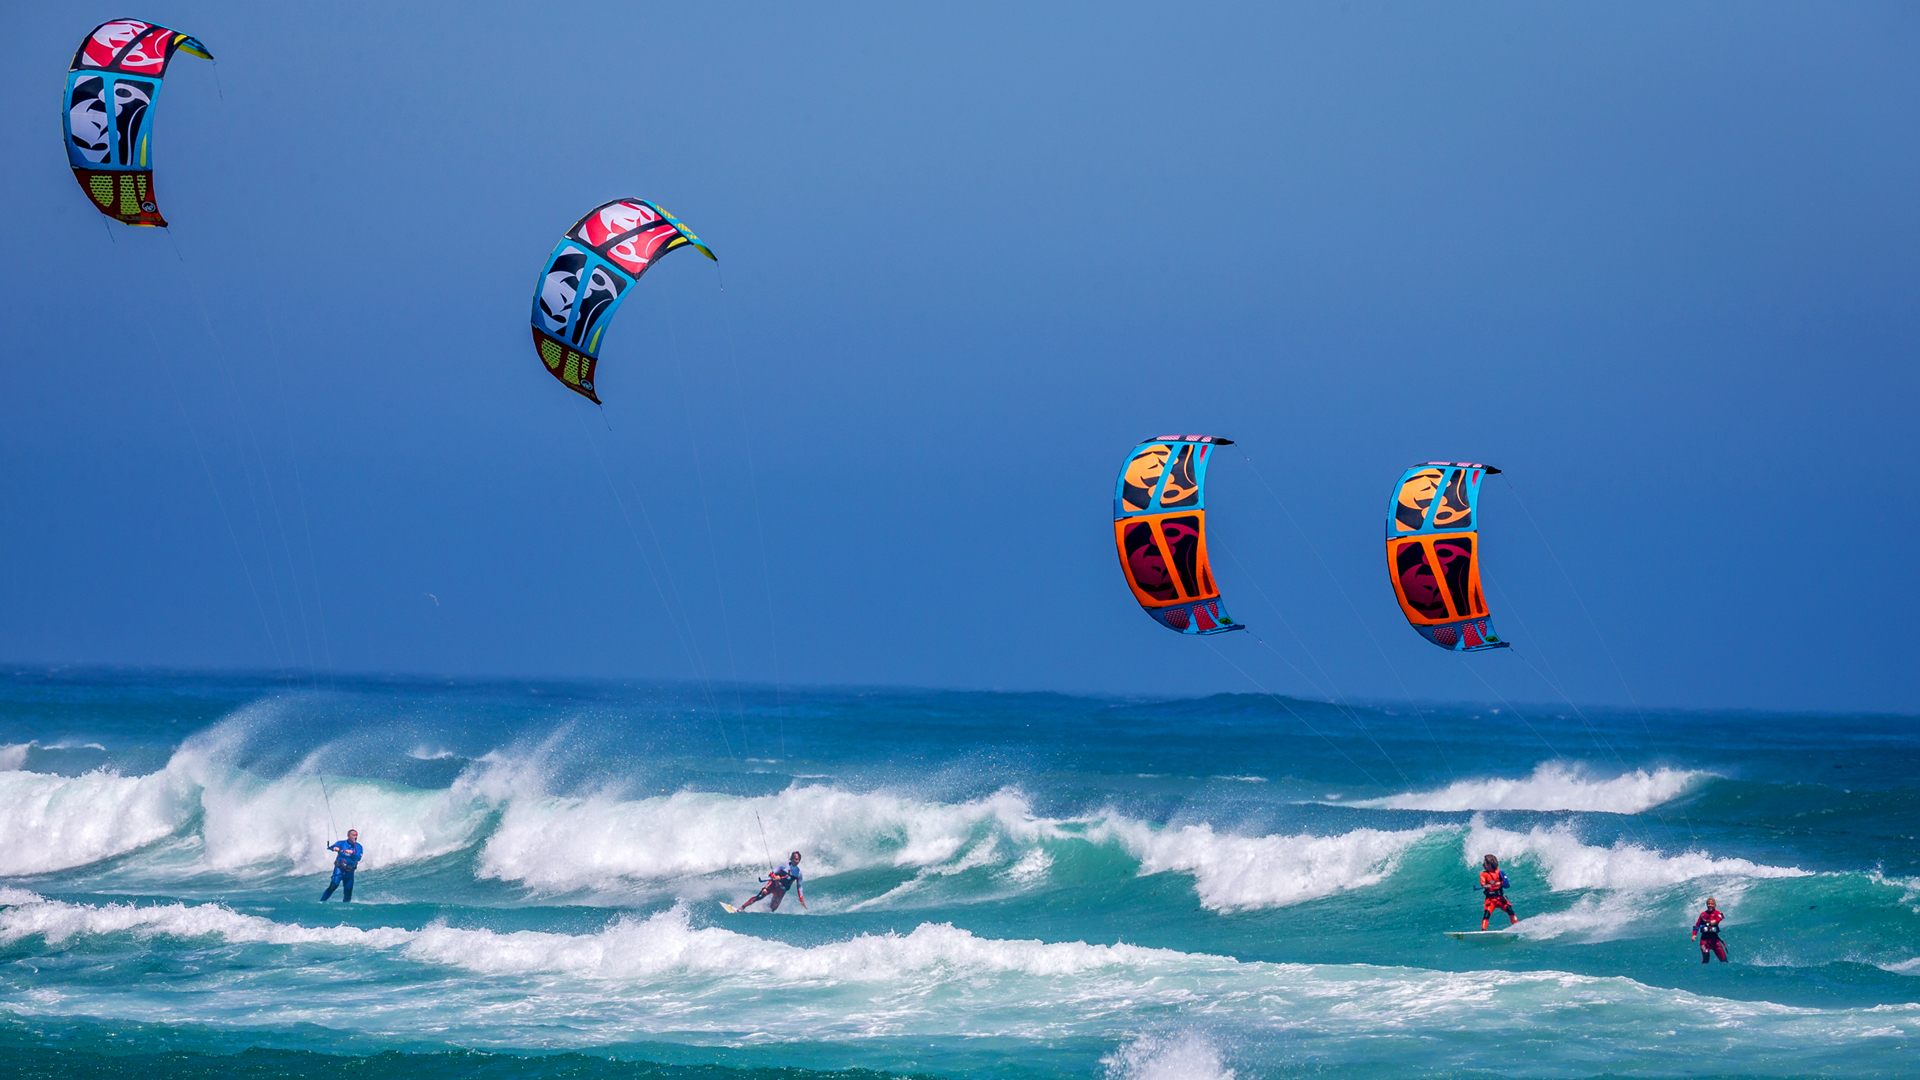 kitesurf wallpaper image - RRD squad taking over this wave on 2015 Religion kites - RRD Kiteboarding - in resolution: High Definition - HD 16:9 1920 X 1080